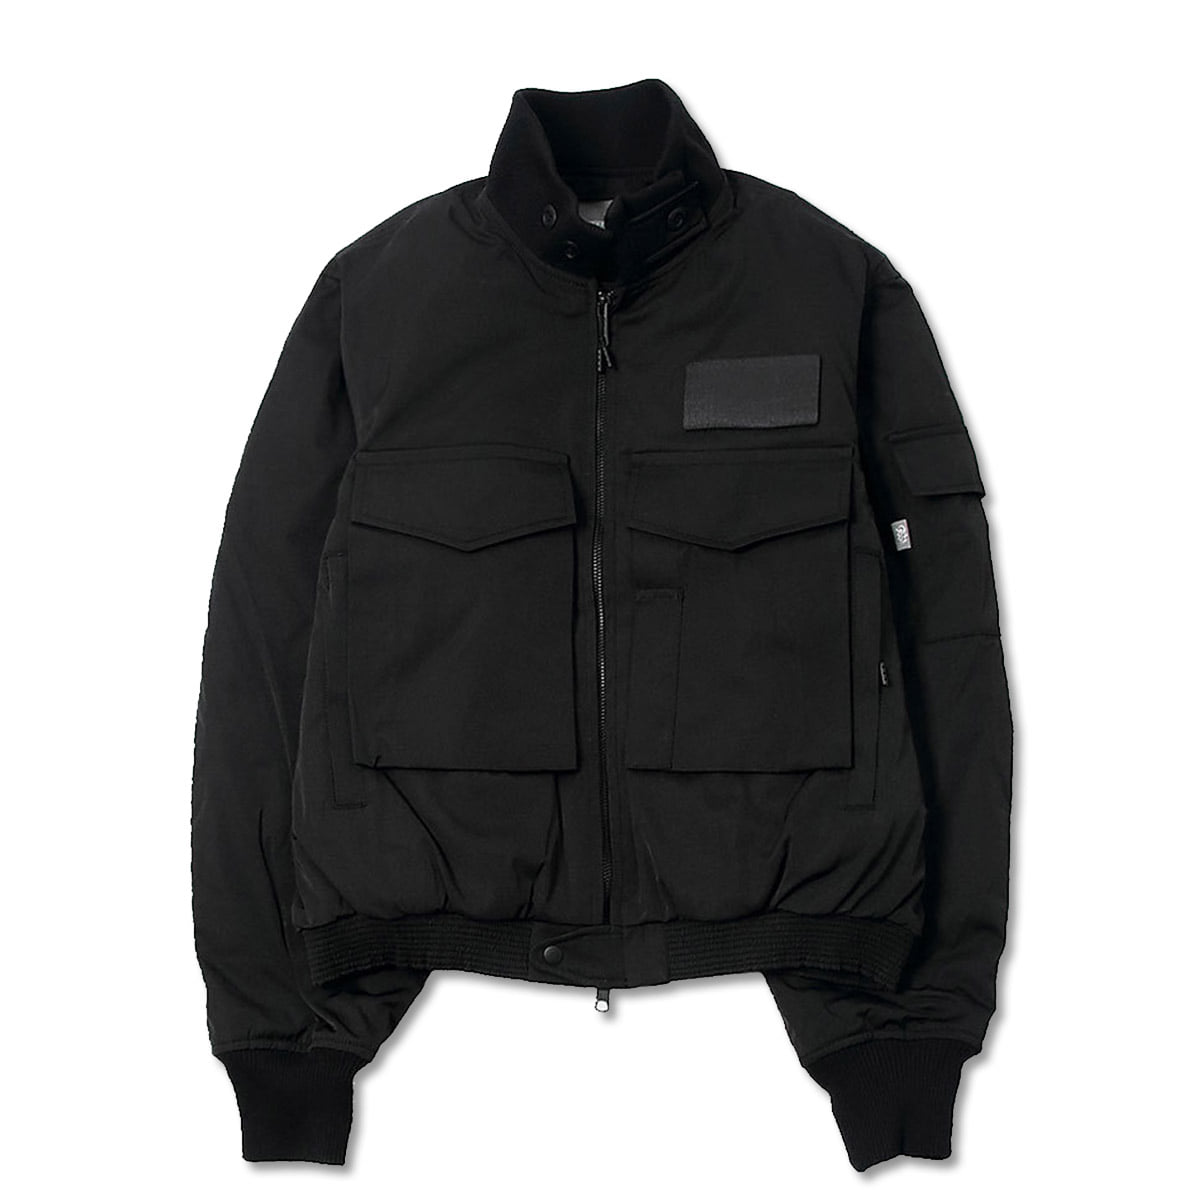 [BEHEAVYER] G8 RESCUE JACKET 'BLACK'